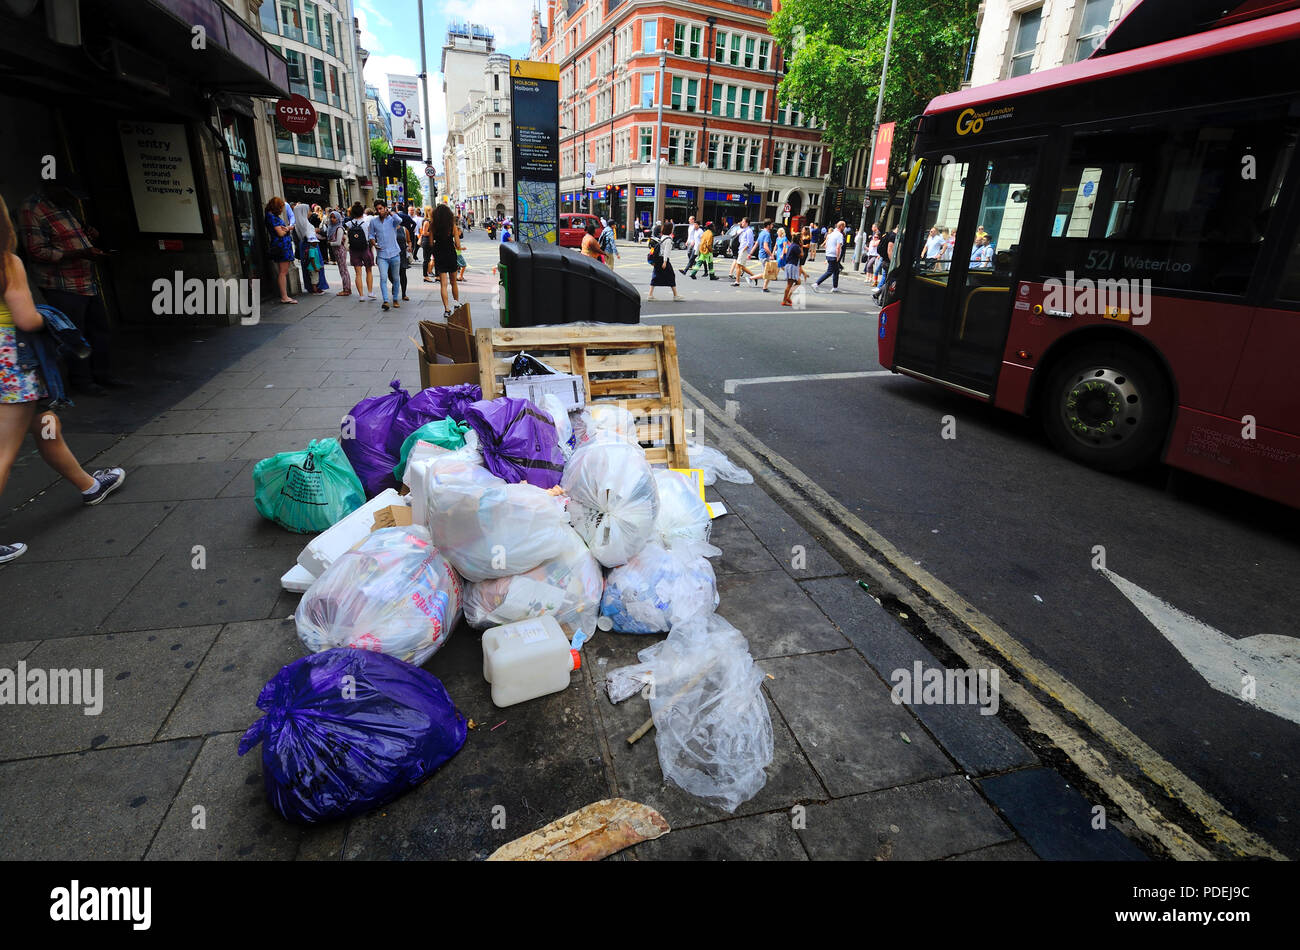 London, England, UK. Rubbish bags piled up by a bin in central London - Stock Image